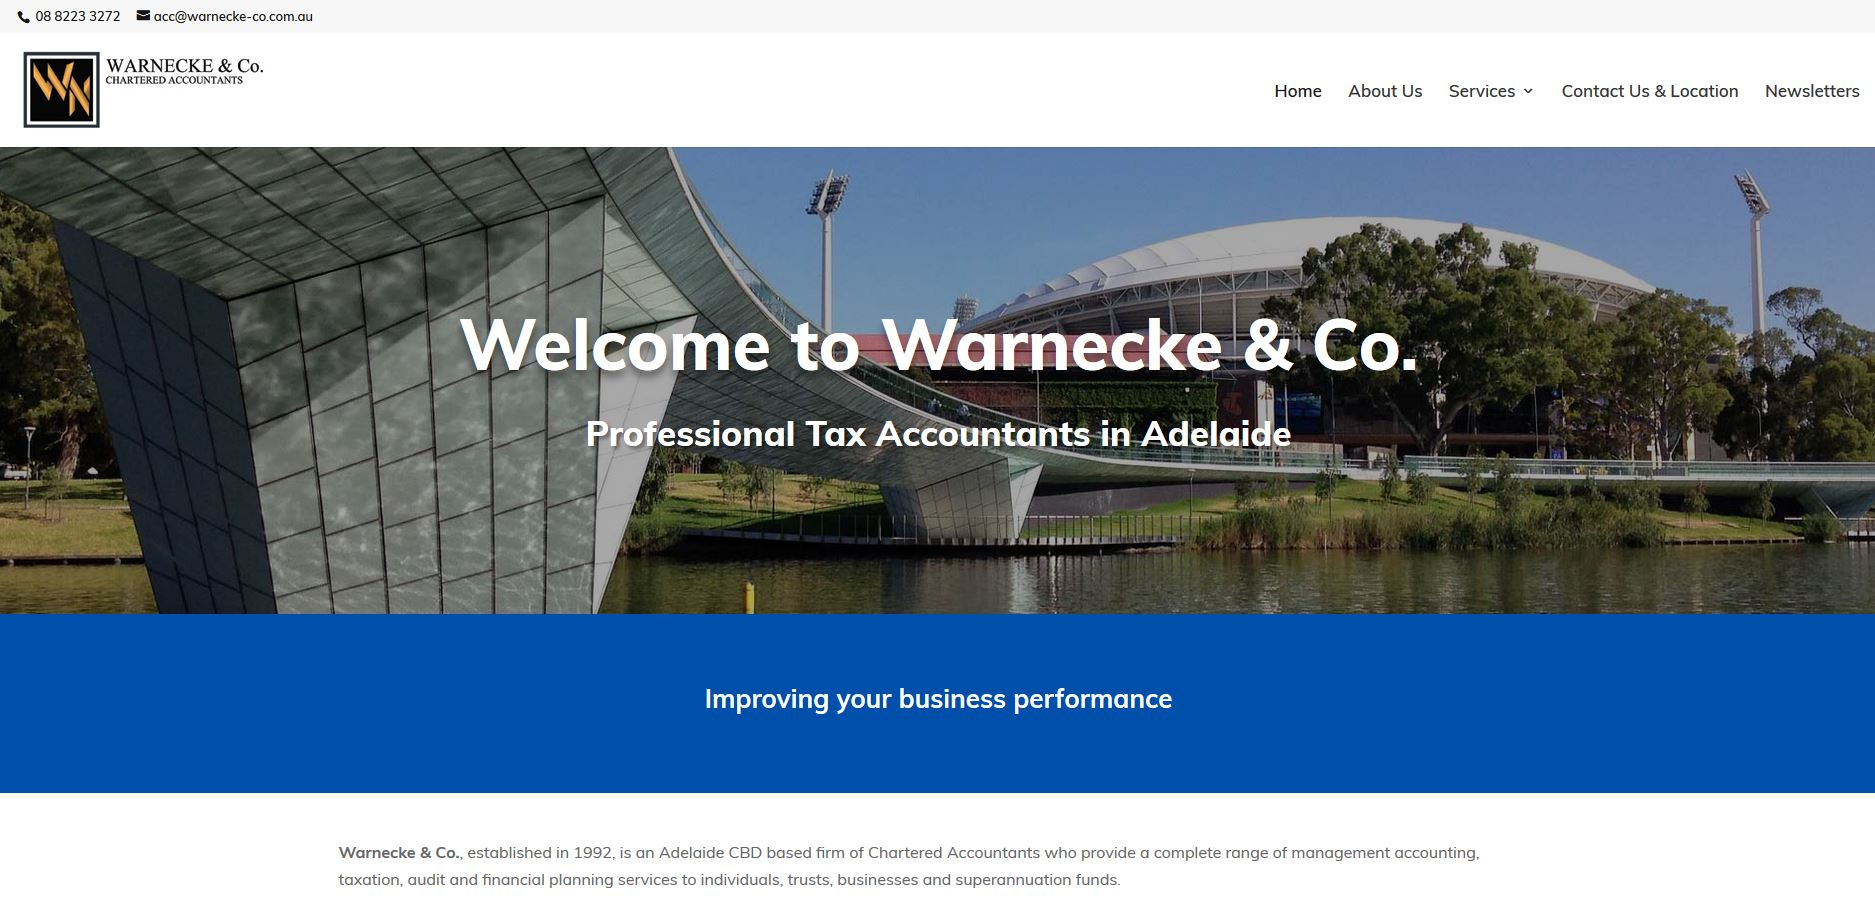 Website for Accountant firm in Adelaide